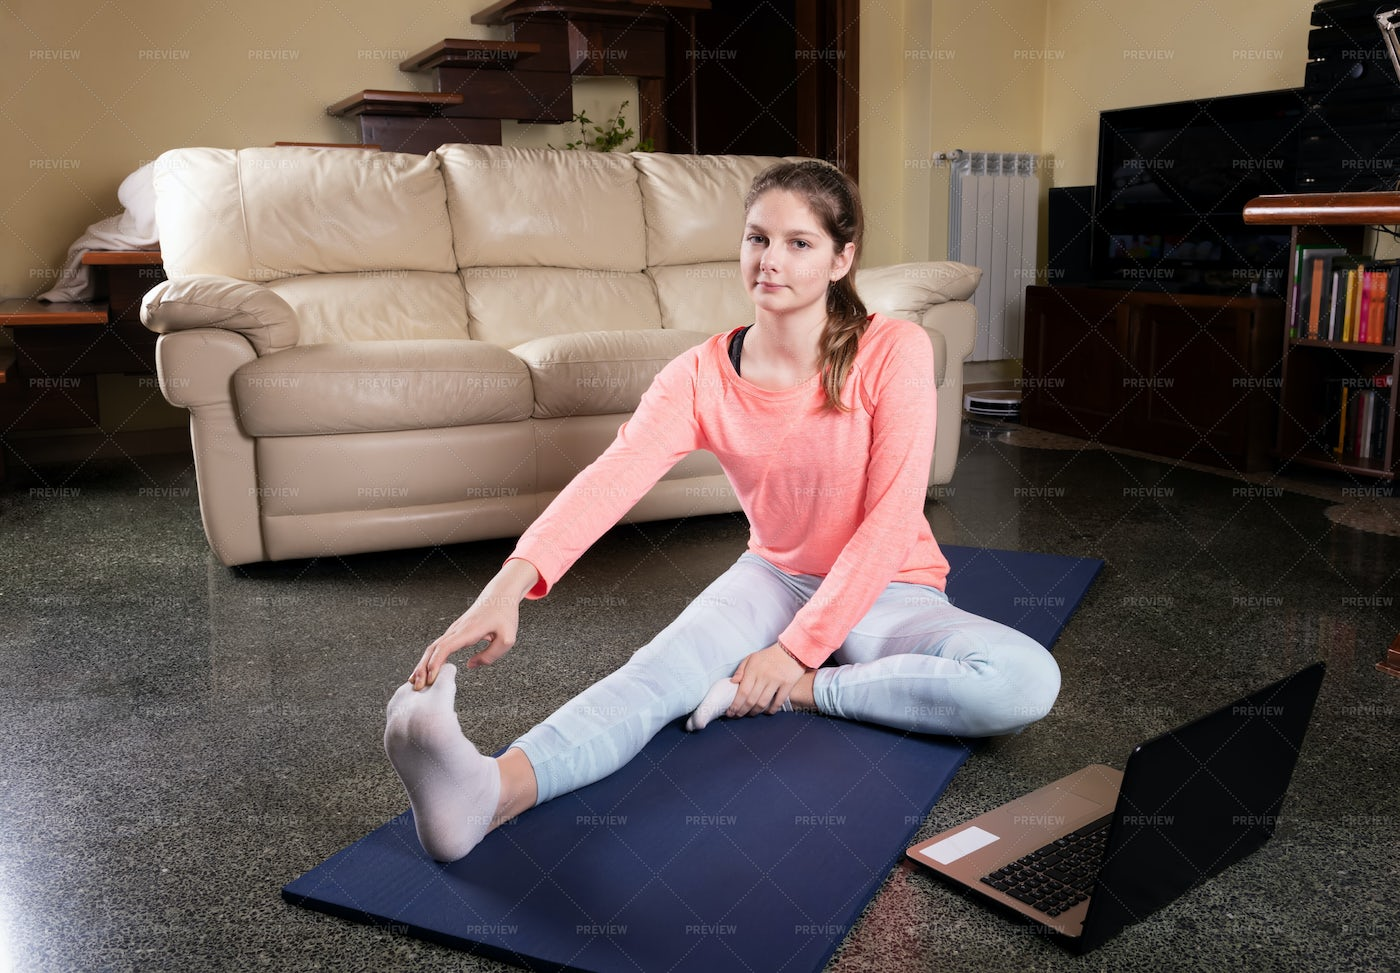 Doing Stretching At Home: Stock Photos